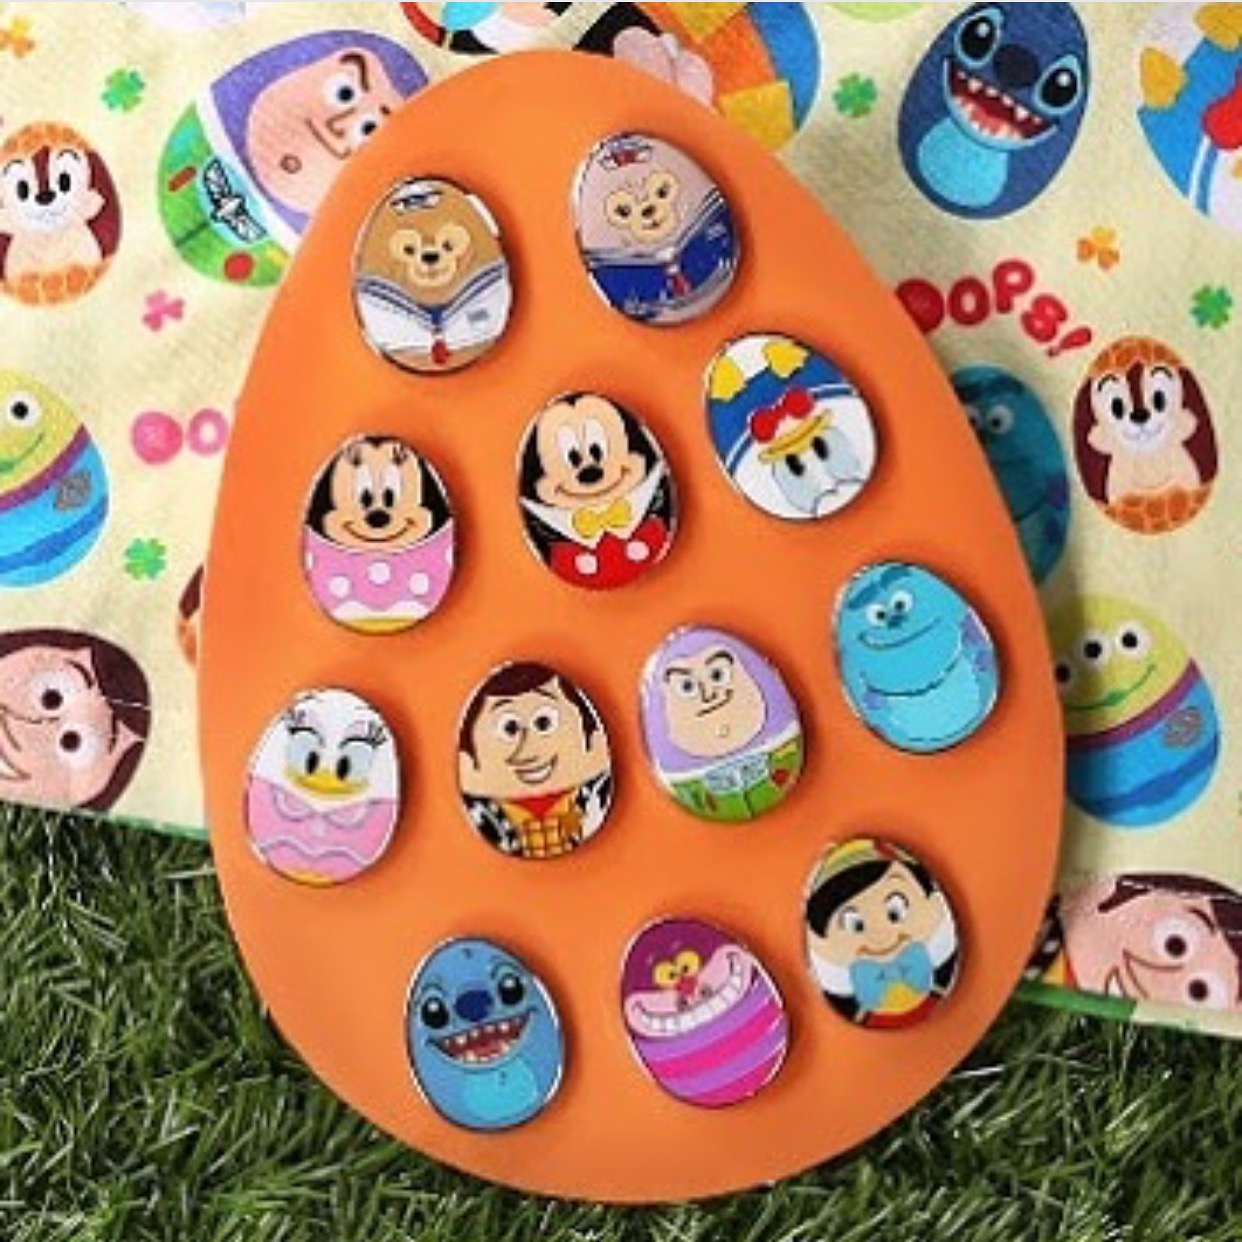 Hong Kong Disneyland Egg Pins 2016 - Disney Pins Blog